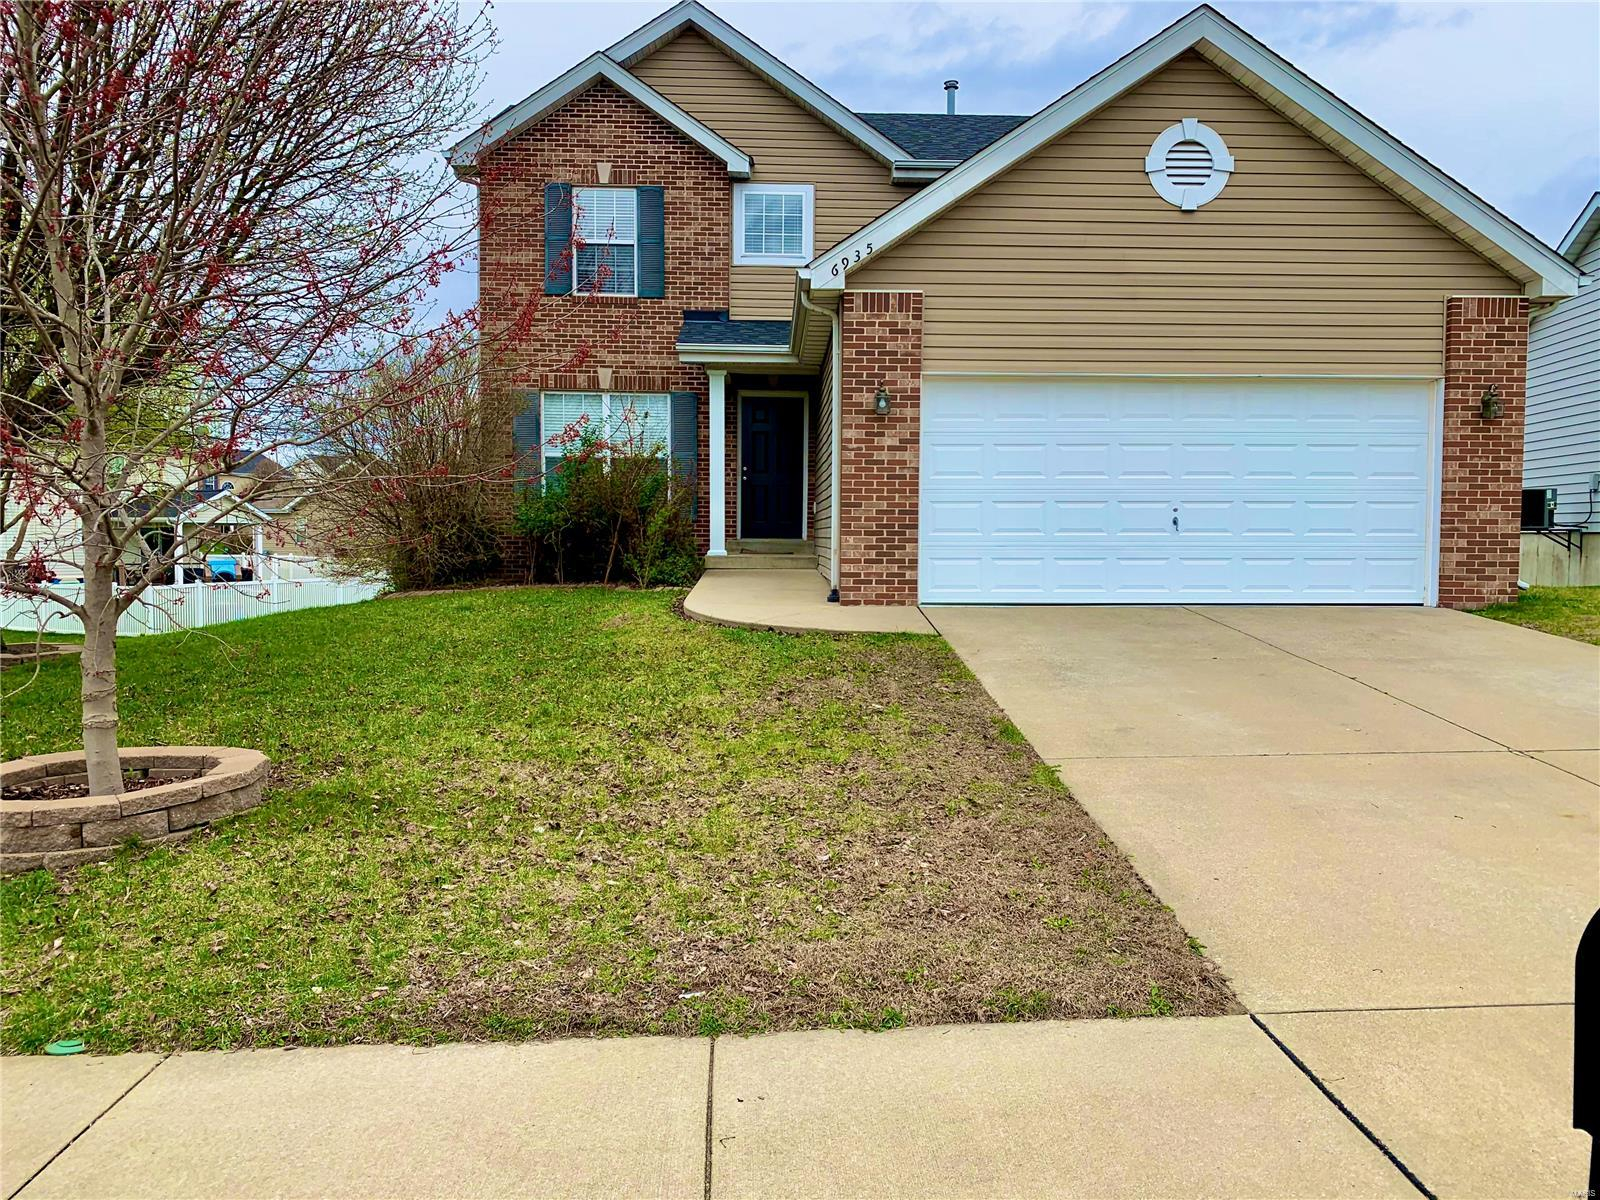 6935 Conner Pointe Property Photo - Fairview Heights, IL real estate listing